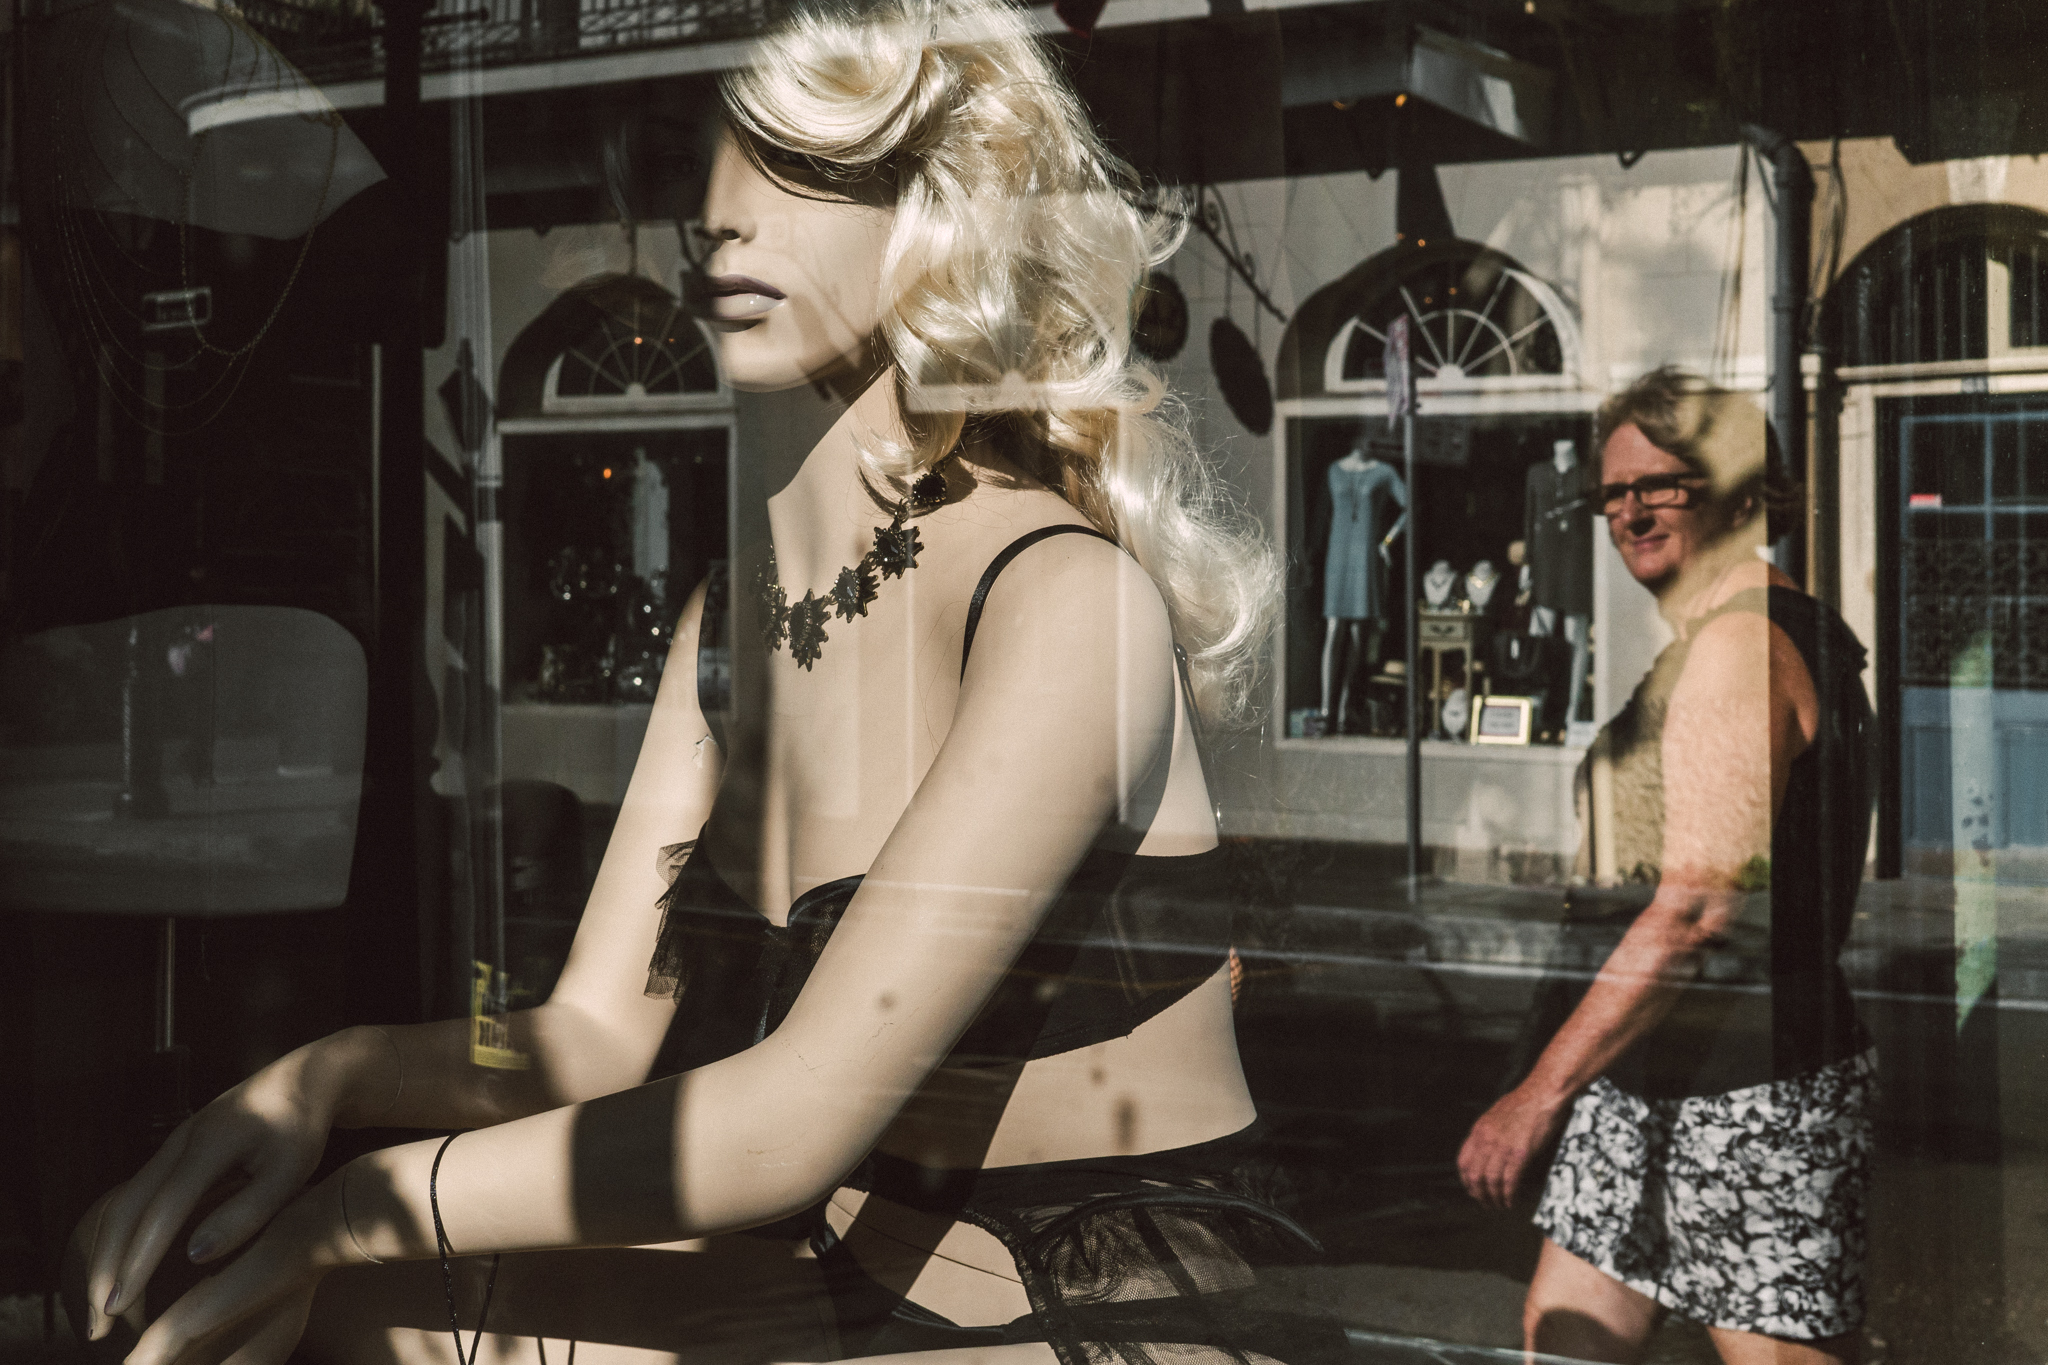 A lingerie shop in the French Quarter.